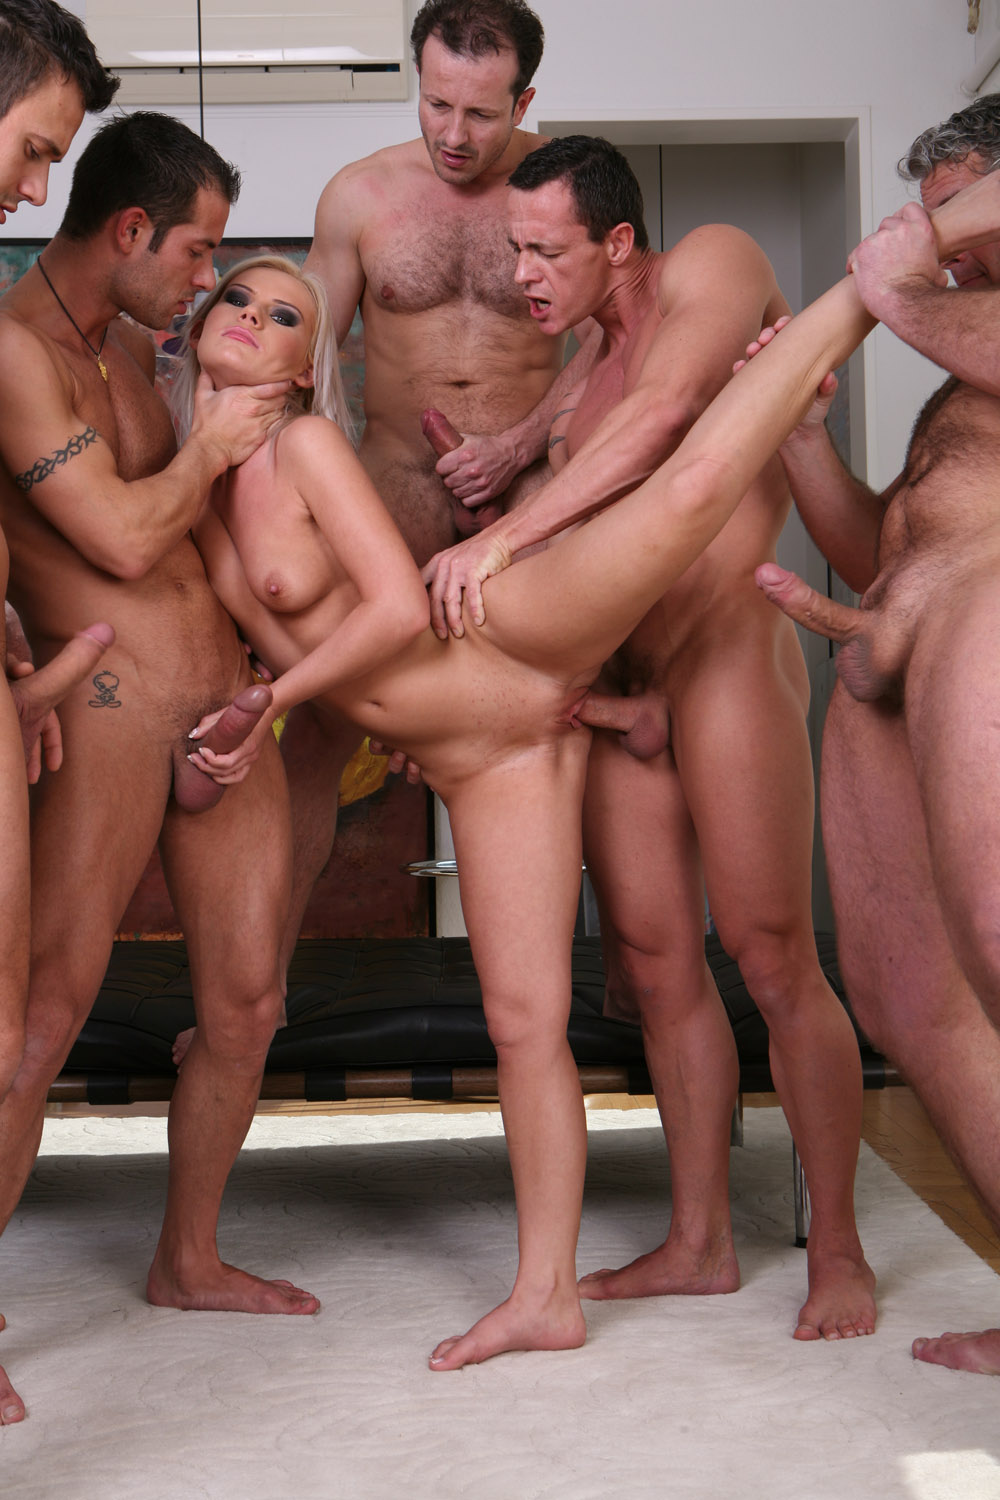 Vampire gang bang adult vids